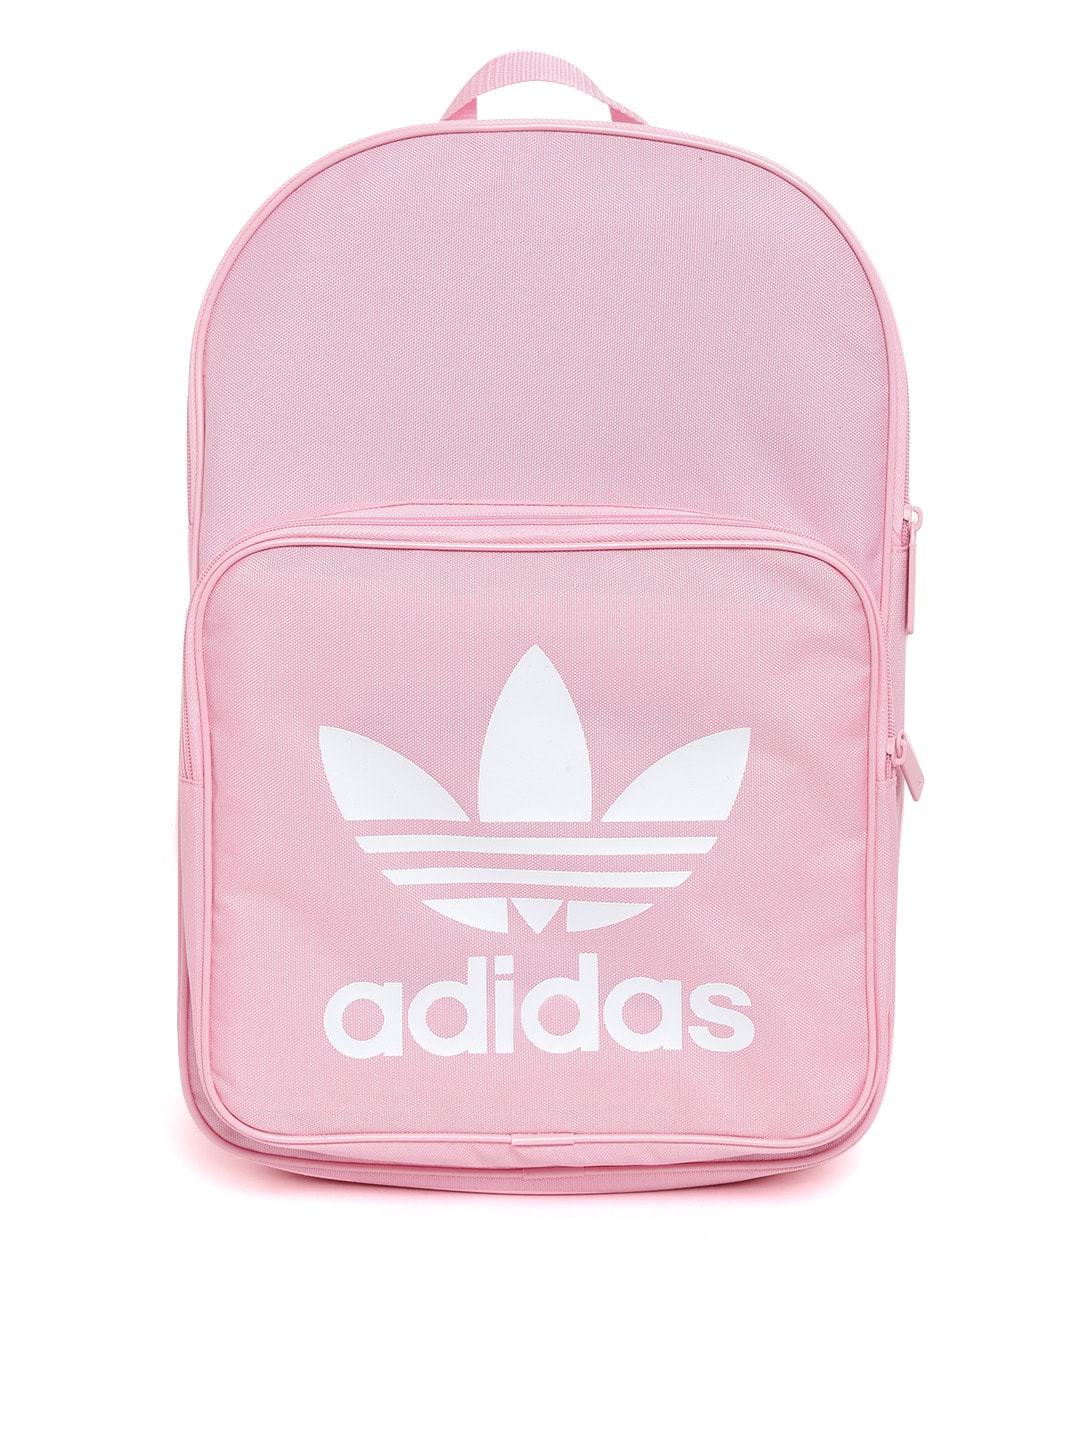 Adidas Original Backpack - Buy Adidas Original Backpack online in India b2041f4b447a3